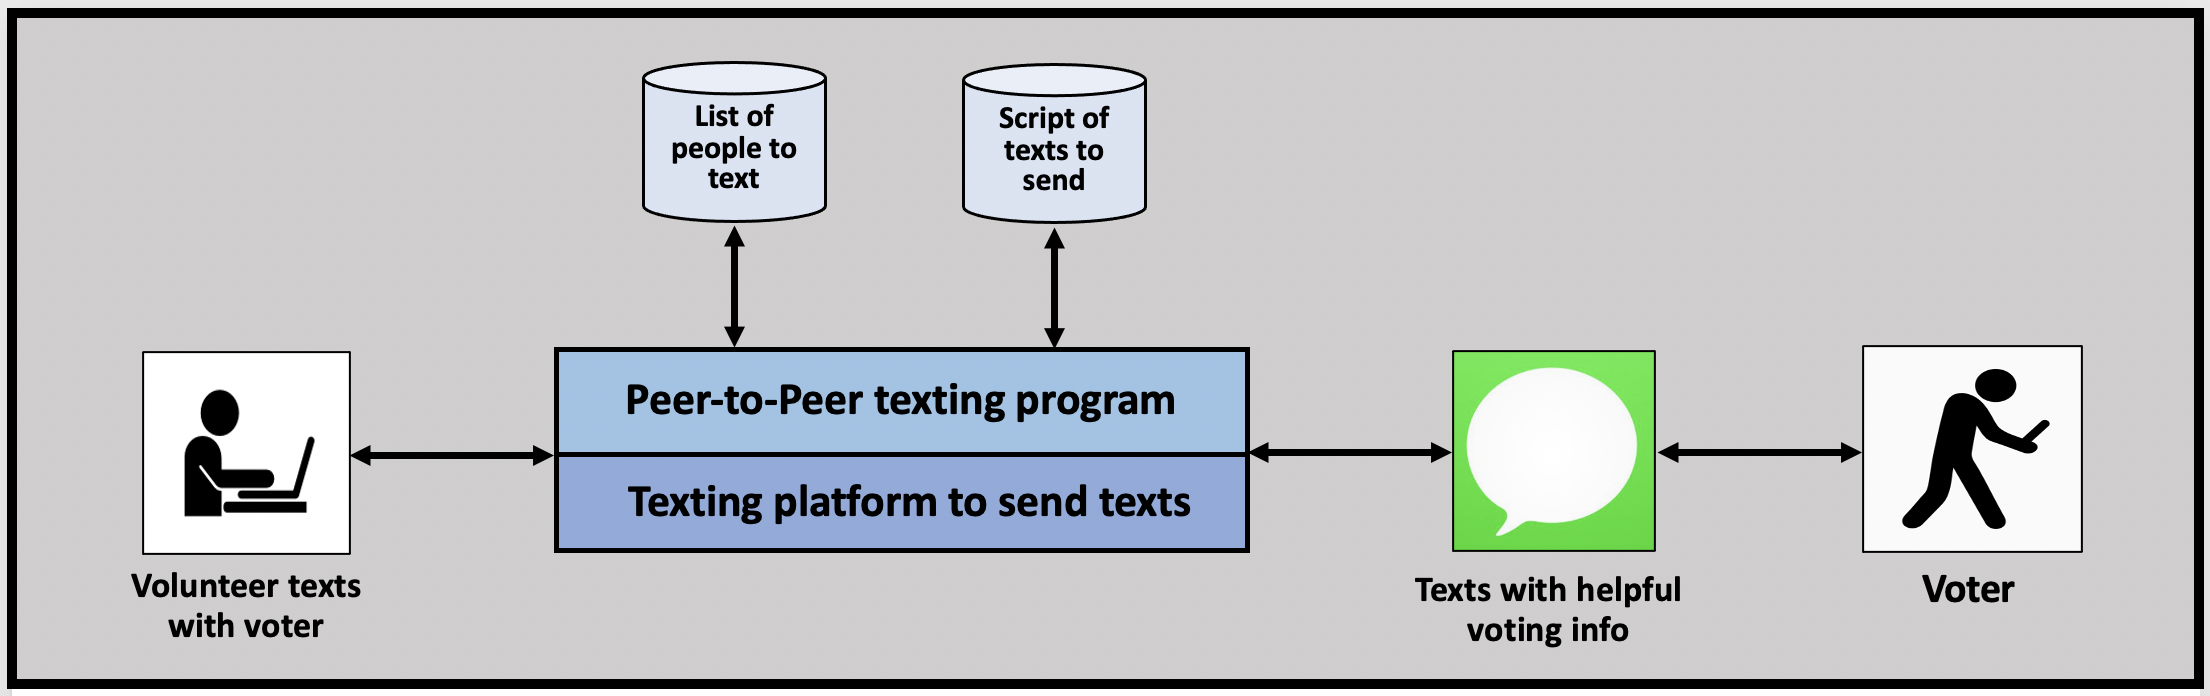 Peer-to-Peer texting programs involve a human being sending the texts.